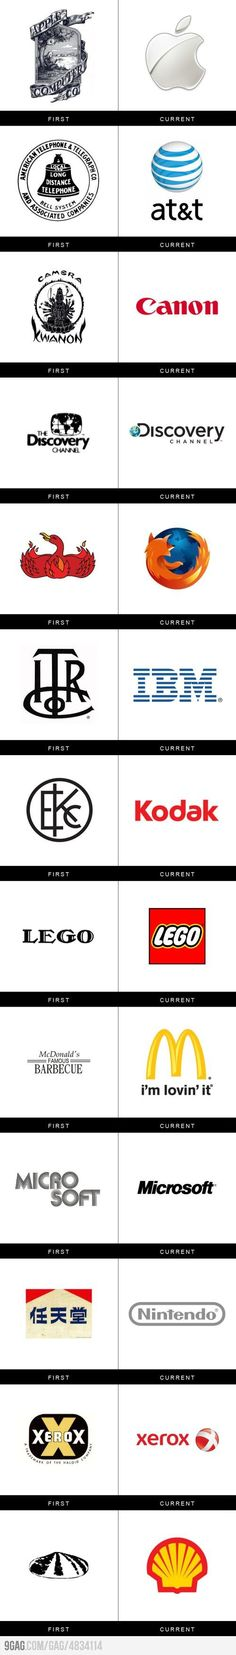 Before and after for famous logos